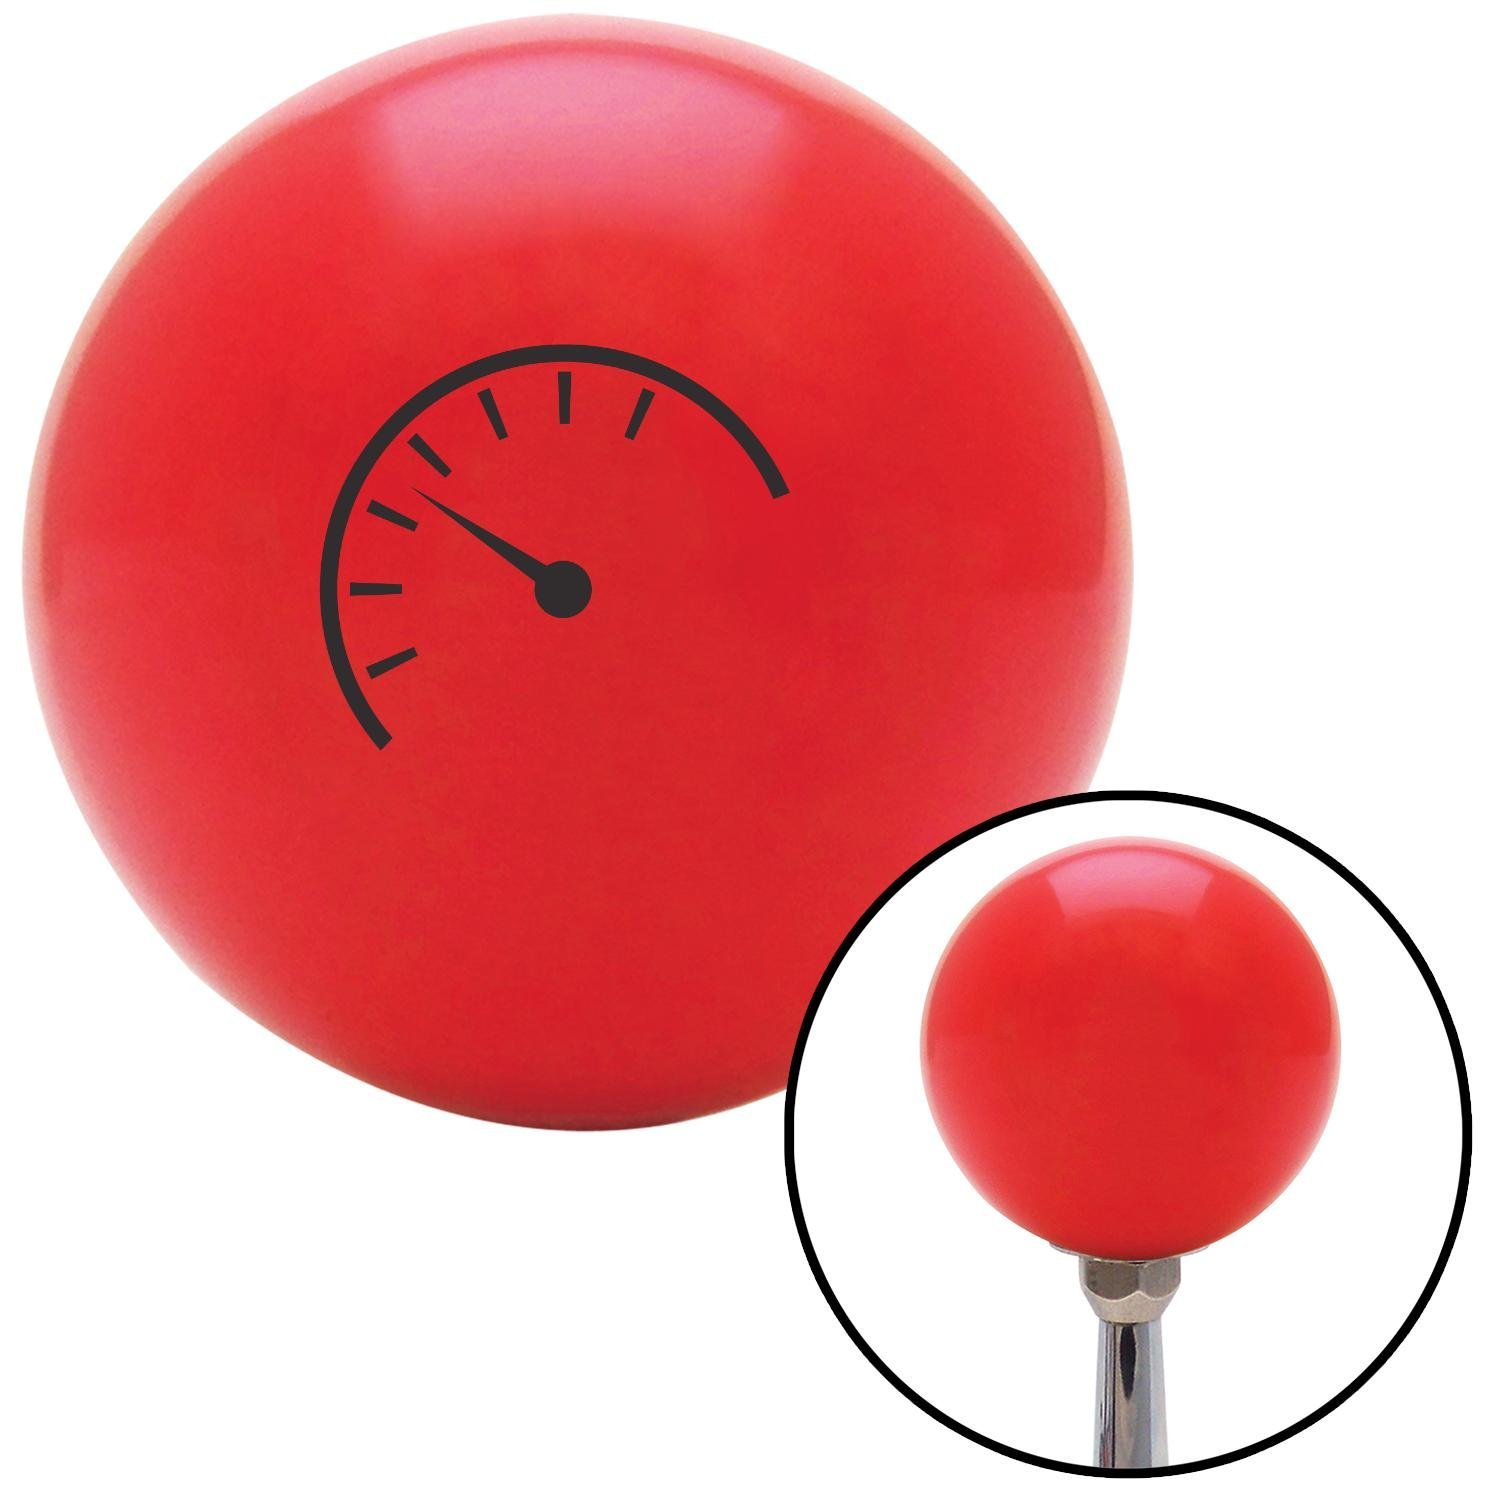 American Shifter 94254 Red Shift Knob with M16 x 1.5 Insert Black Automotive Gauge